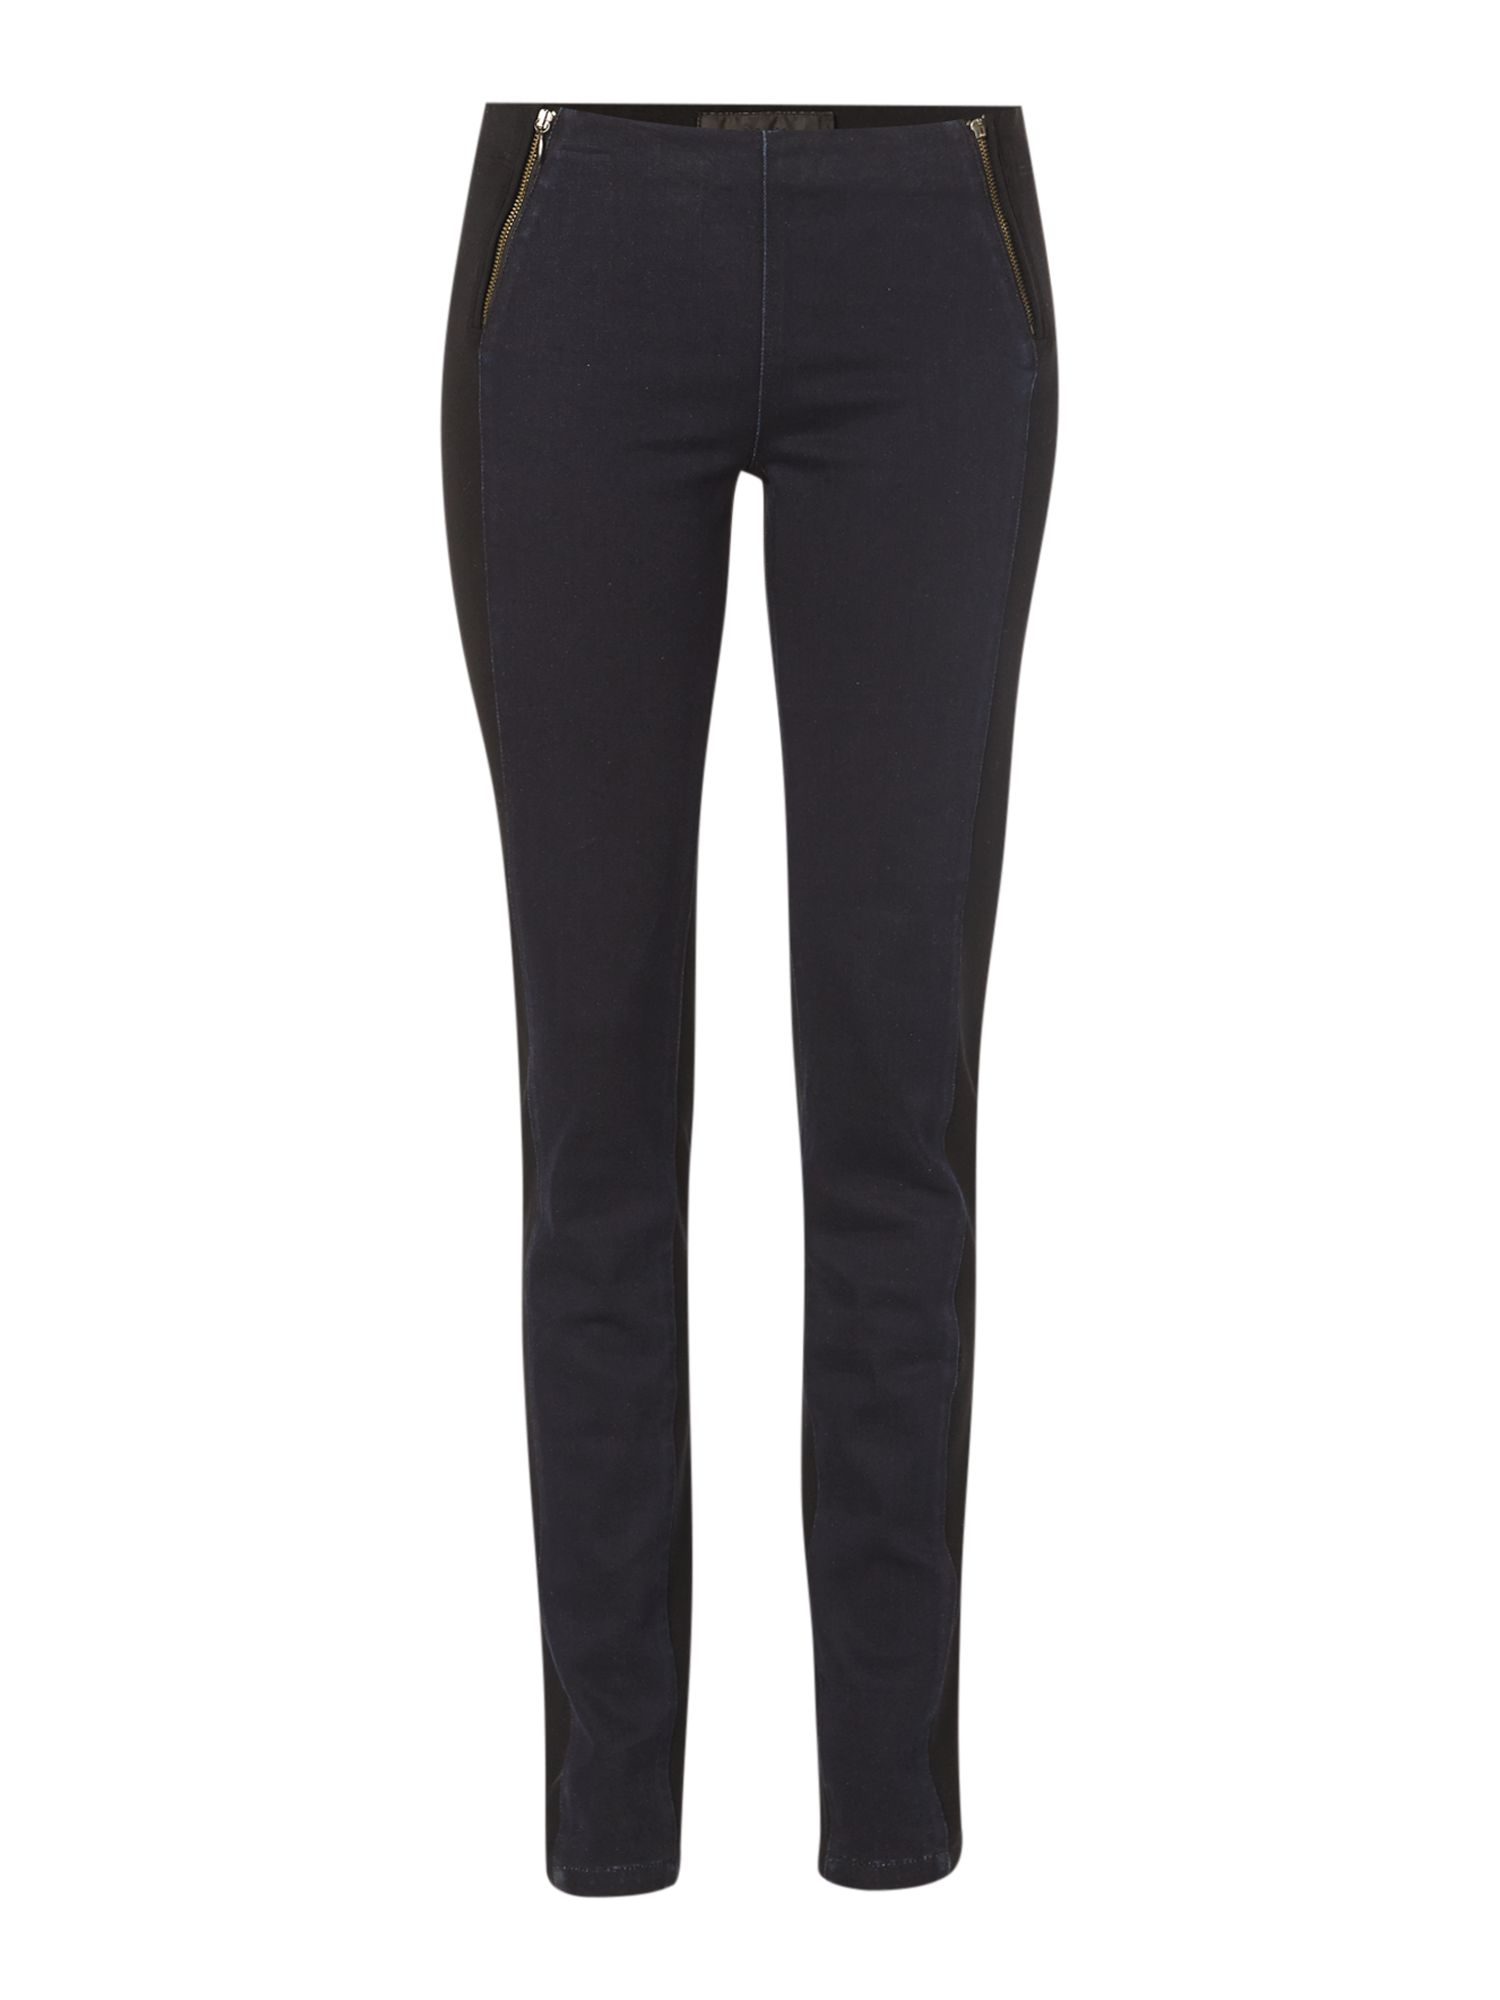 Skinny jegging with zip detail